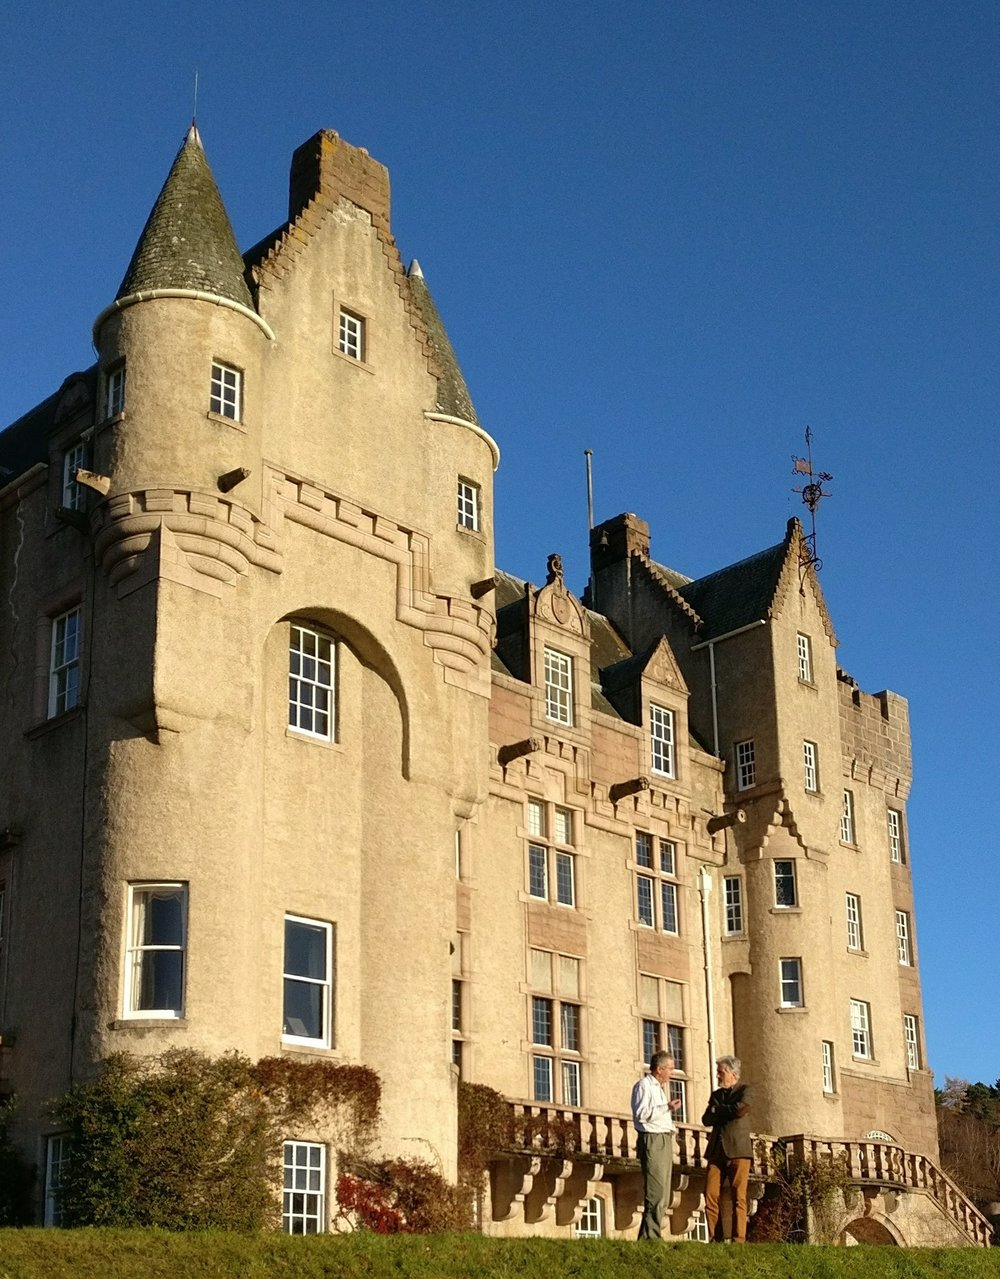 David J Whyte and Andrew Bradford, Laird of Kincardine Castle on Royal Deeside, one of our extraordinary accommodations